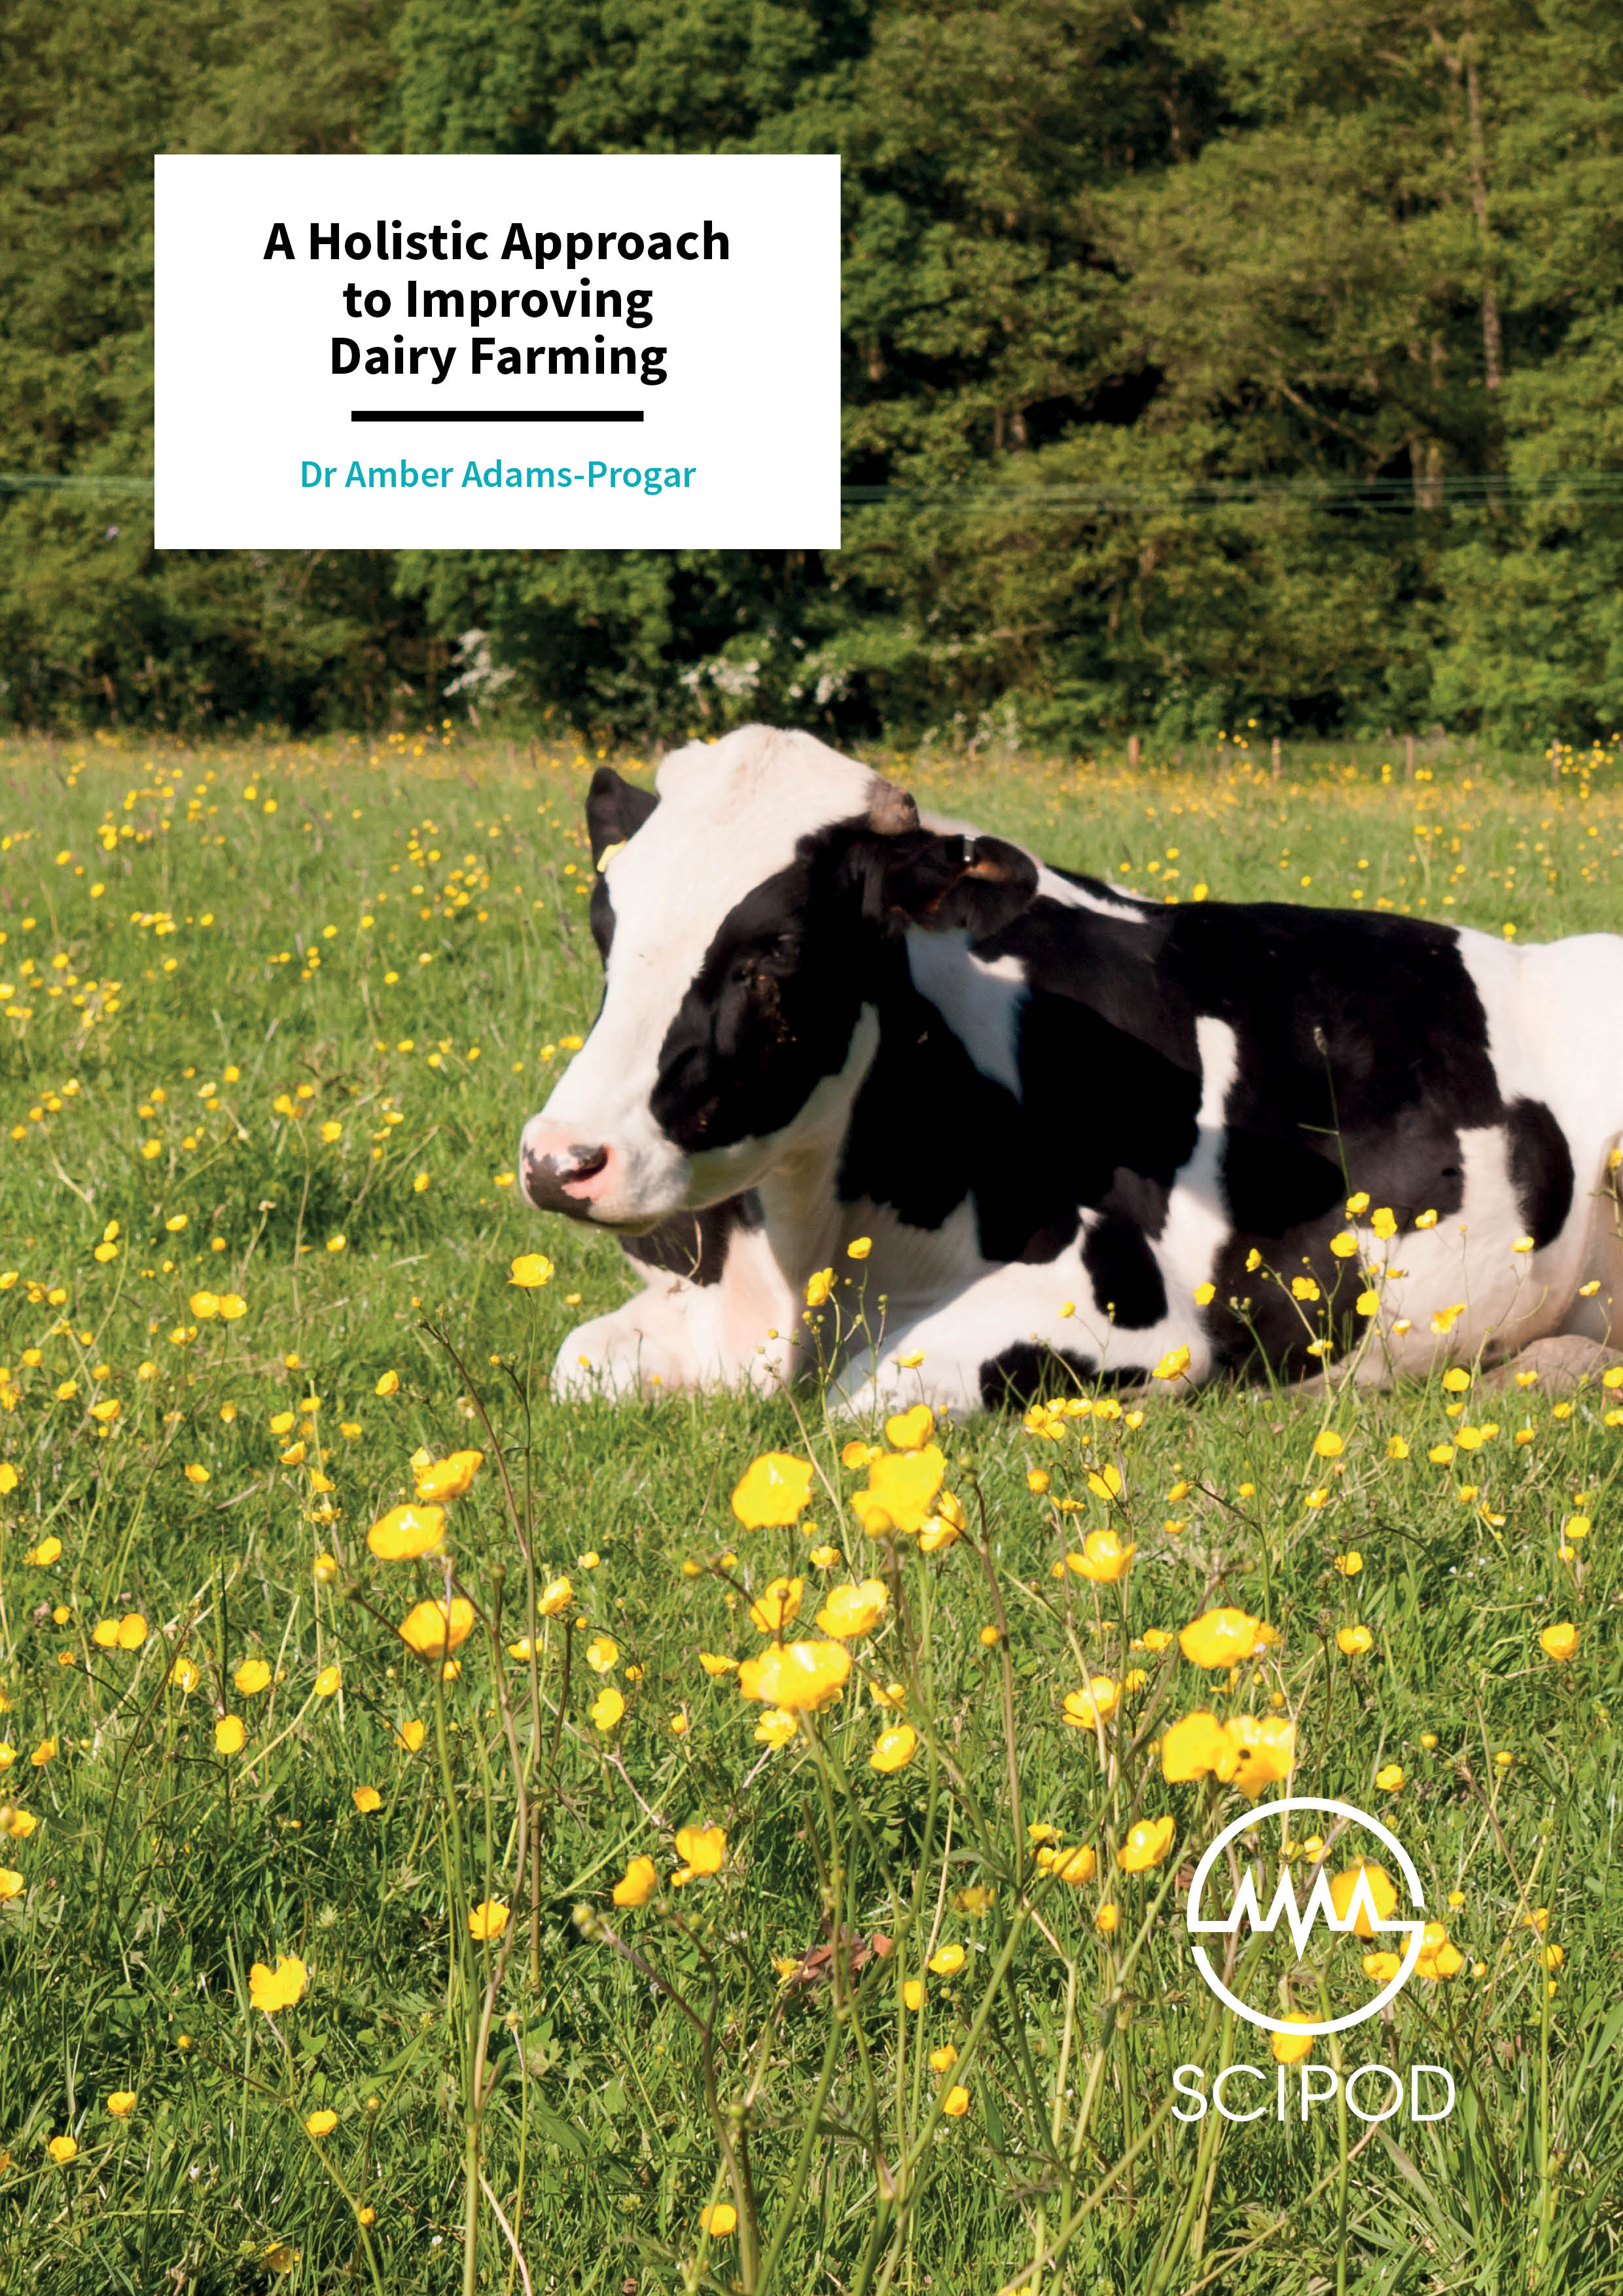 A Holistic Approach to Improving Dairy Farming – Dr Amber Adams-Progar, Washington State University